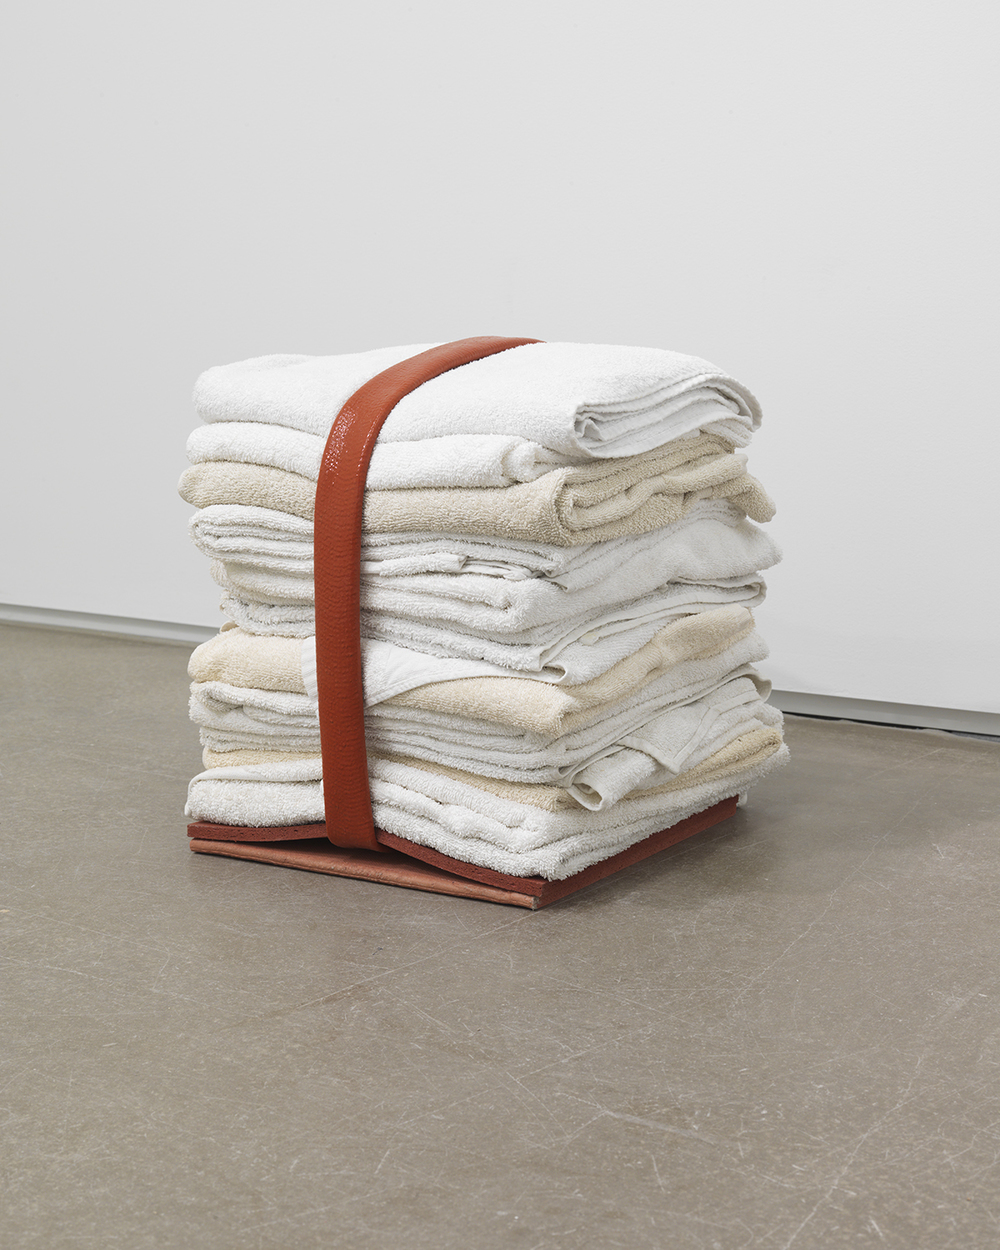 Zachary Susskind Mother Tongue, 2012 Cotton, rubber and silicone 15 x 15 x 15 inches